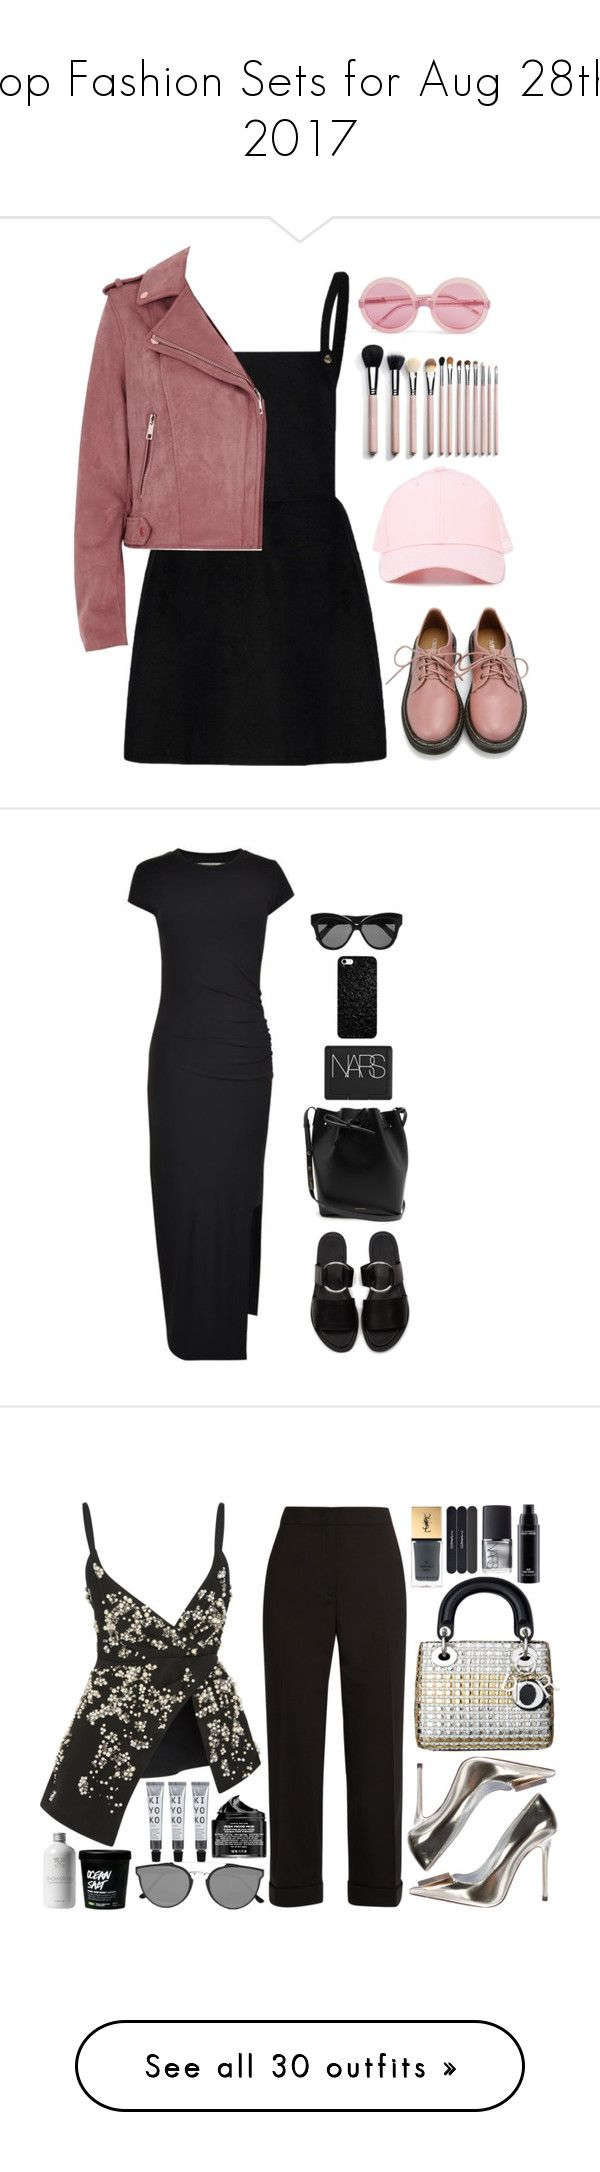 """""""Top Fashion Sets for Aug 28th, 2017"""" by polyvore ❤ liked on Polyvore featuring River Island, Wildfox, F.A.M.T., Retrò, Gestuz, Warehouse, Mansur Gavriel, NARS Cosmetics, Linda Farrow and Bibhu Mohapatra"""